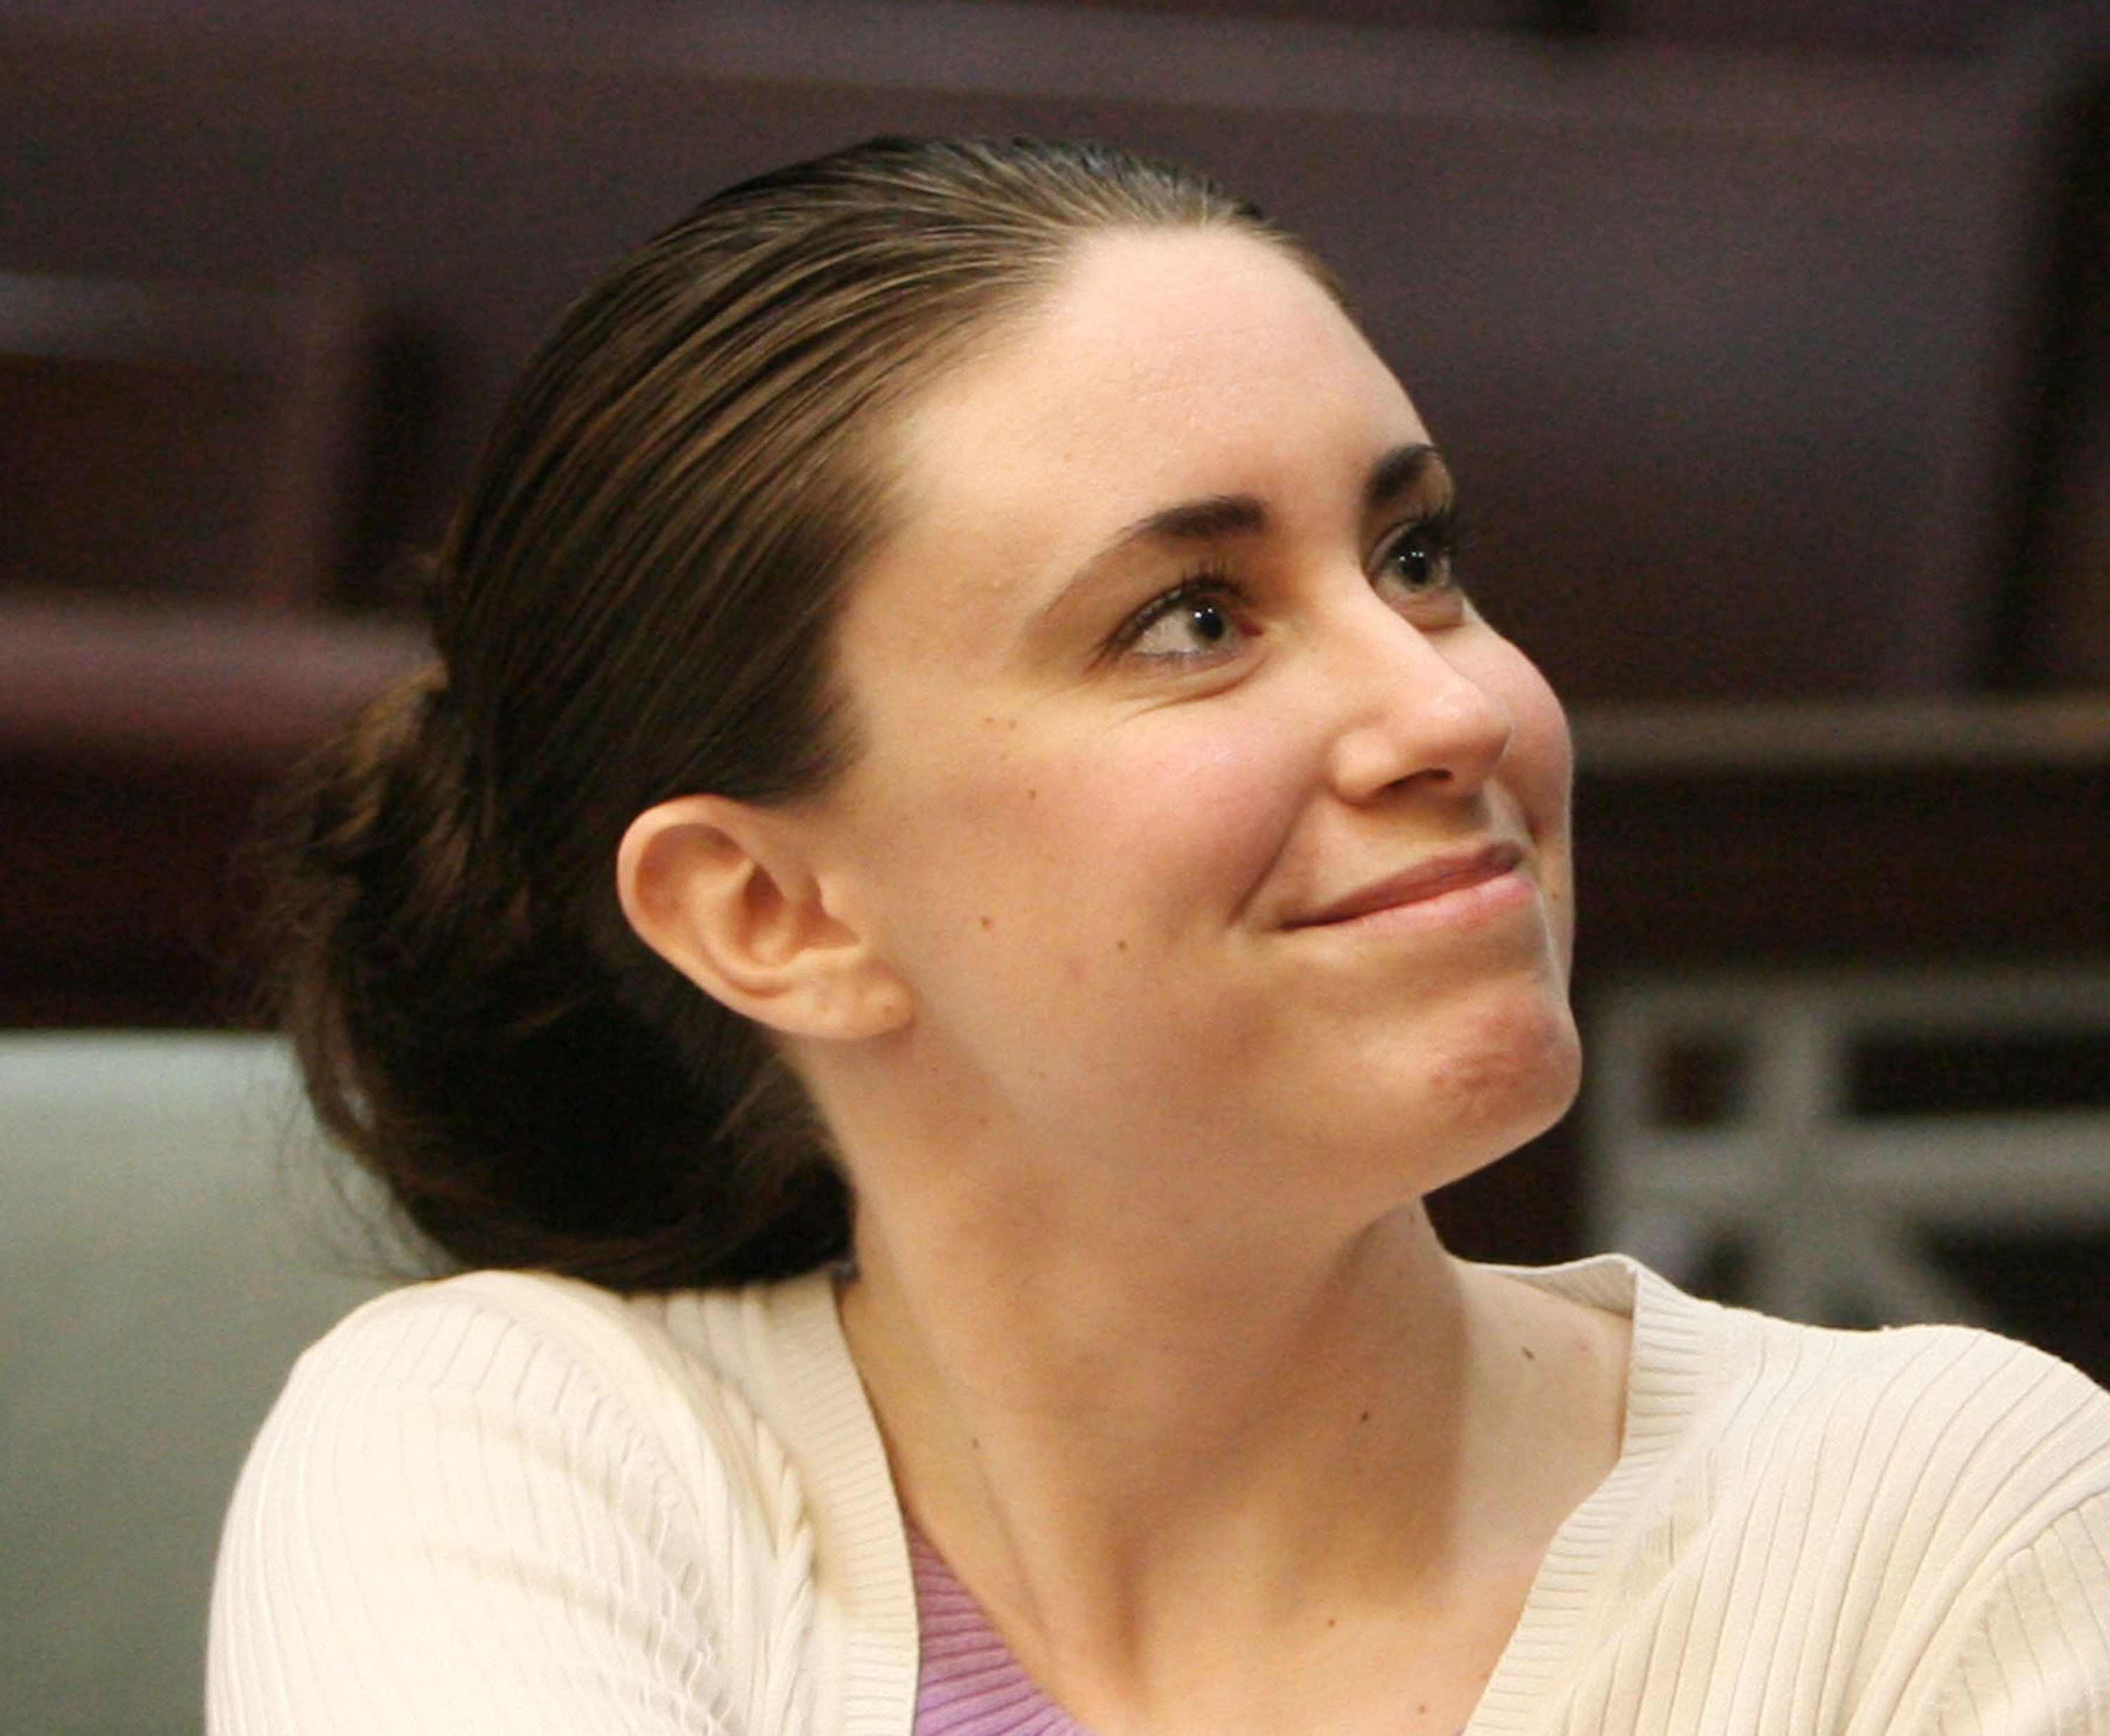 Casey Anthony smiles as she greets her defense team during a court hearing at the Orange County Courthouse on Thursday, March 12, 2009, in Orlando, Florida. Anthony was accused of killing her daughter, two-year-old Caylee Marie Anthony last summer.  (Photo by Red Huber/Orlando Sentinel/MCT via Getty Images)